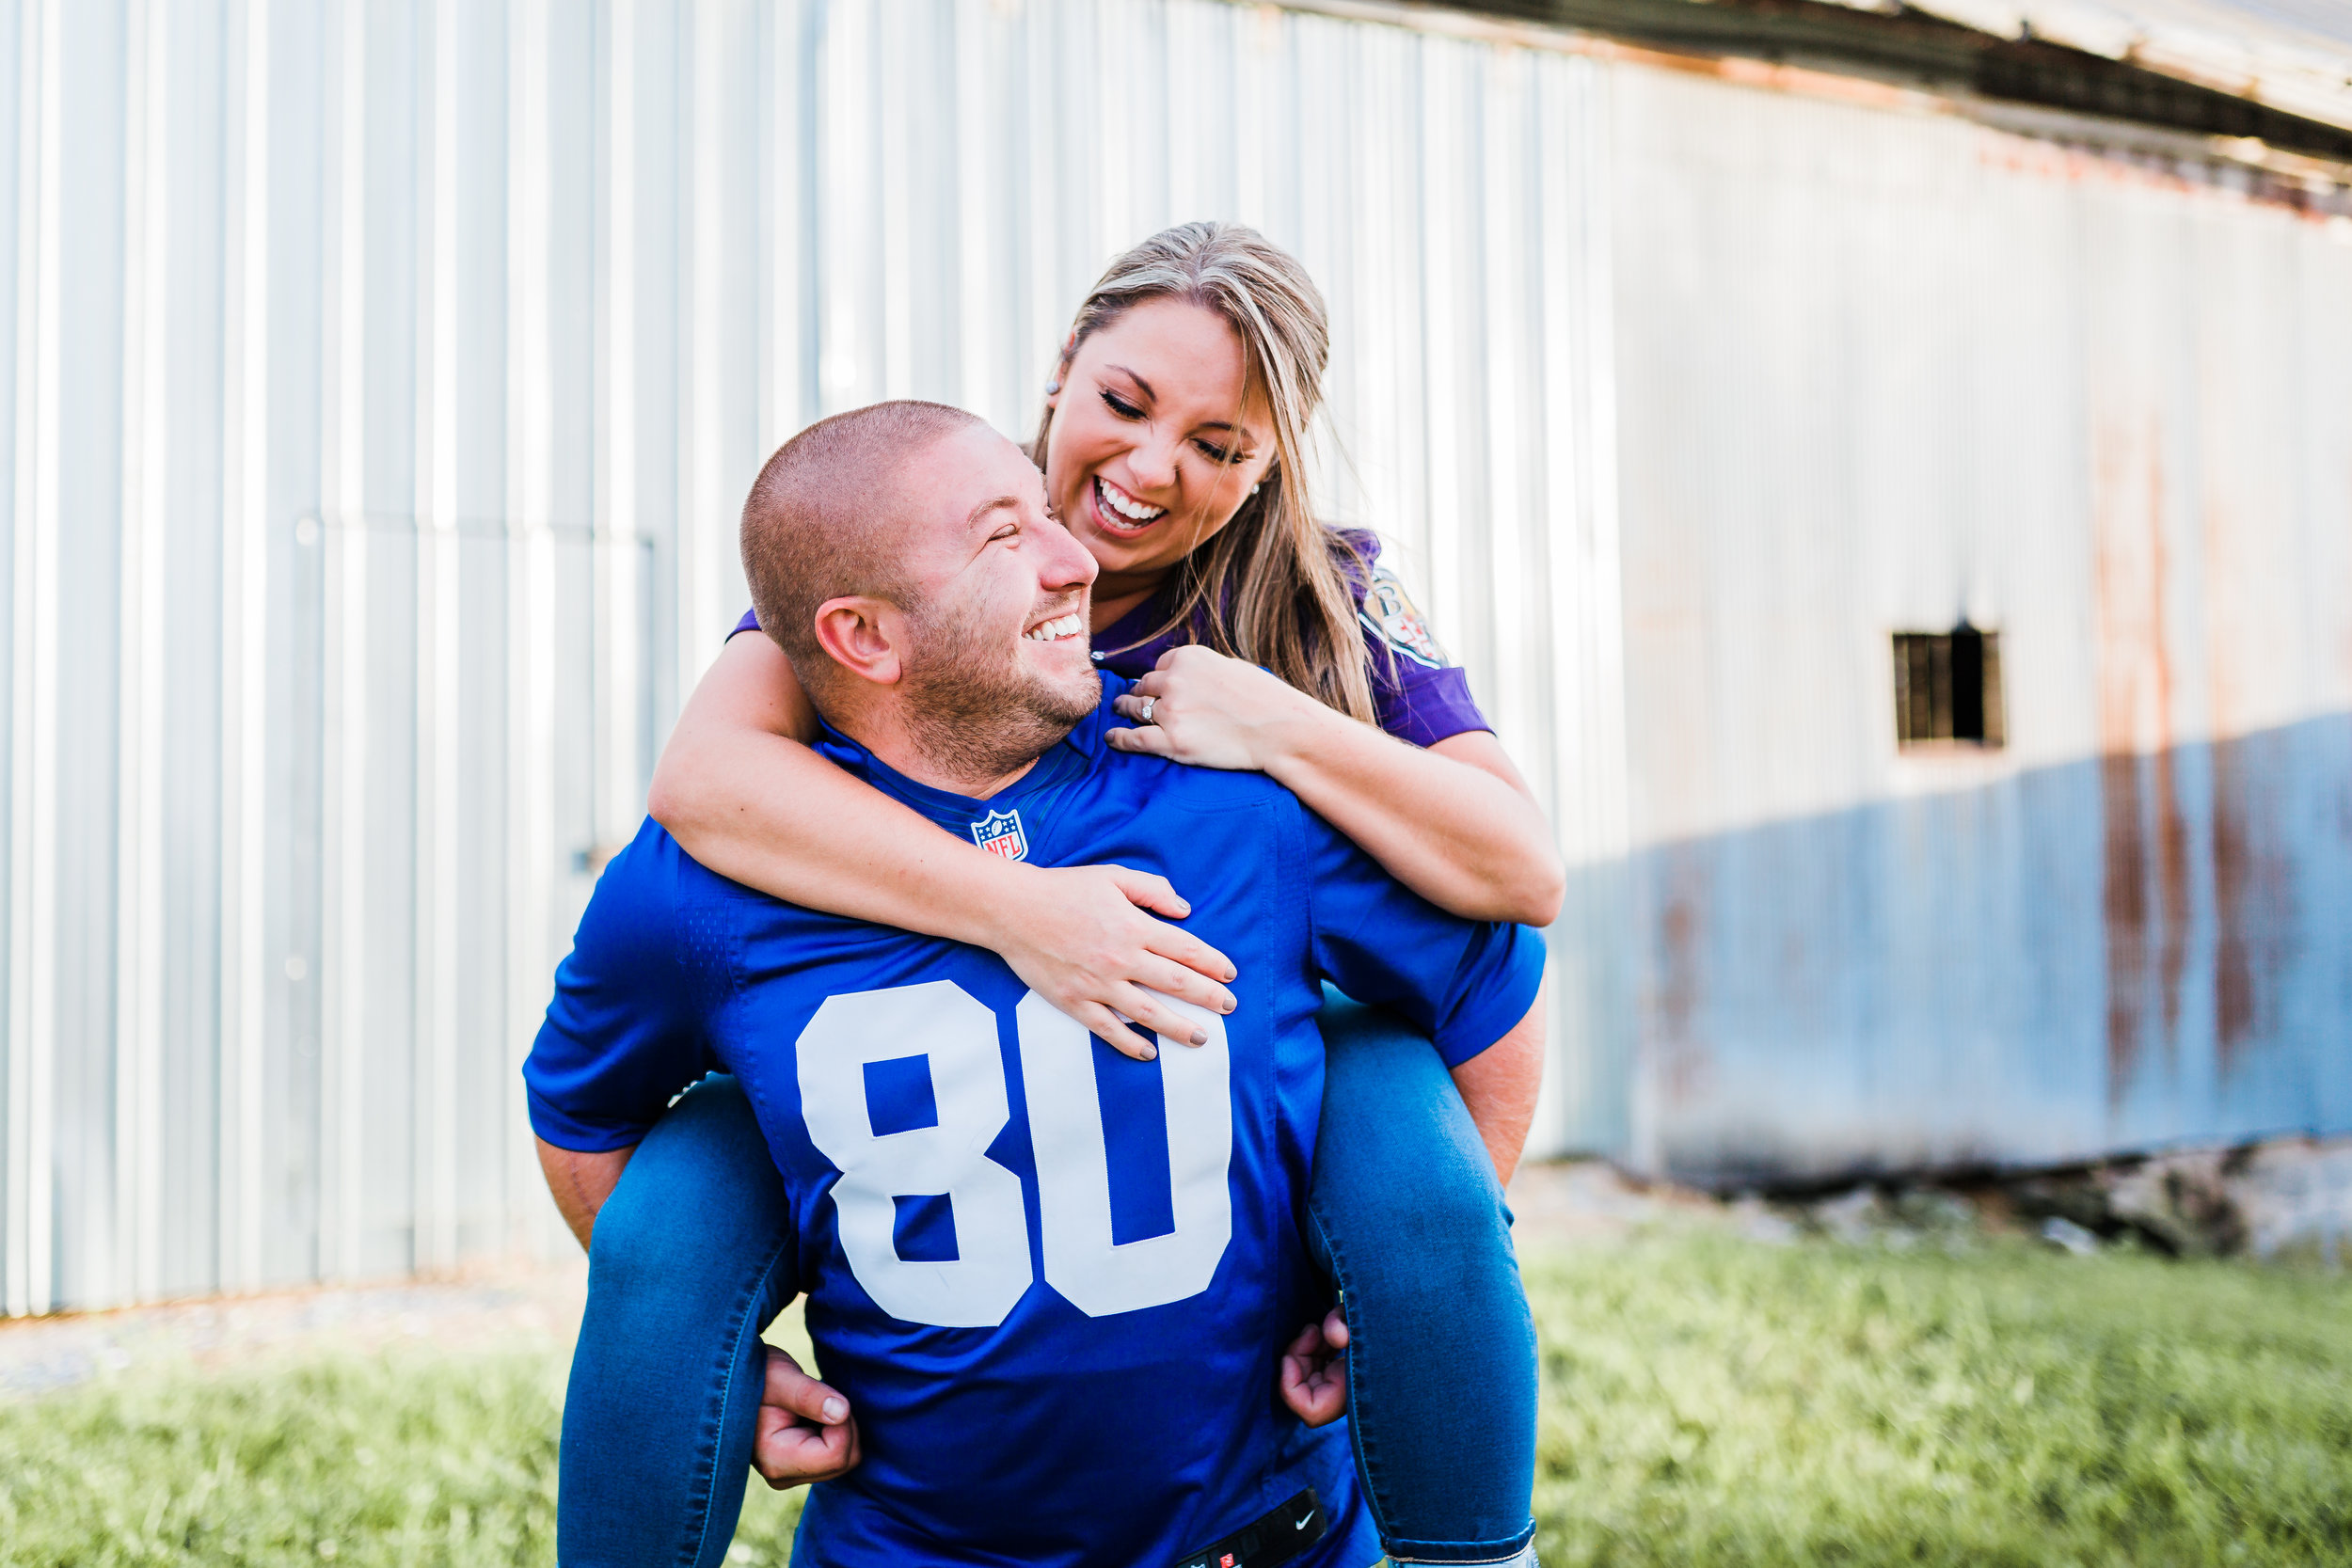 adorable couple - groom giving bride a piggyback - fun engagement photo ideas